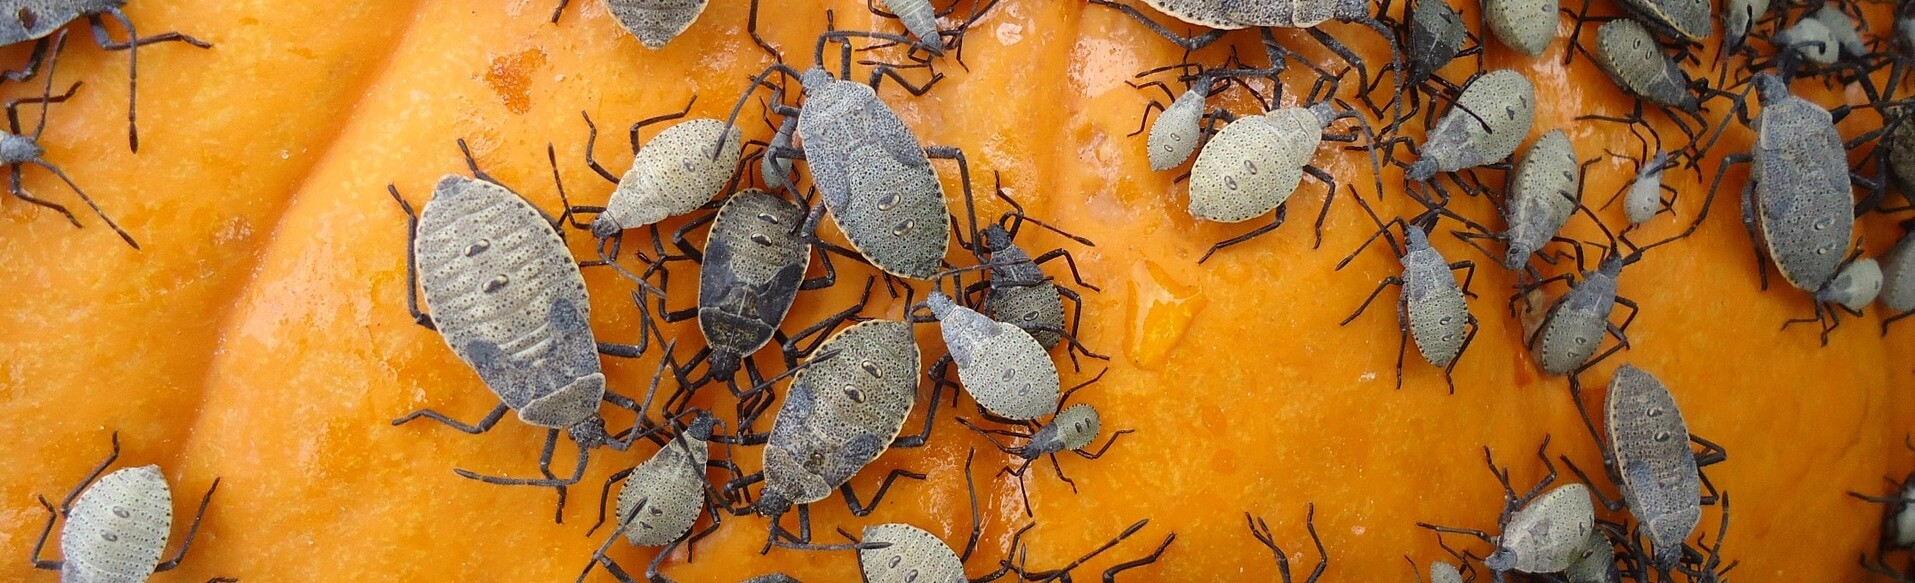 Why Fall Pest Control Is So ImportantWhy Fall Pest Control Is So Important